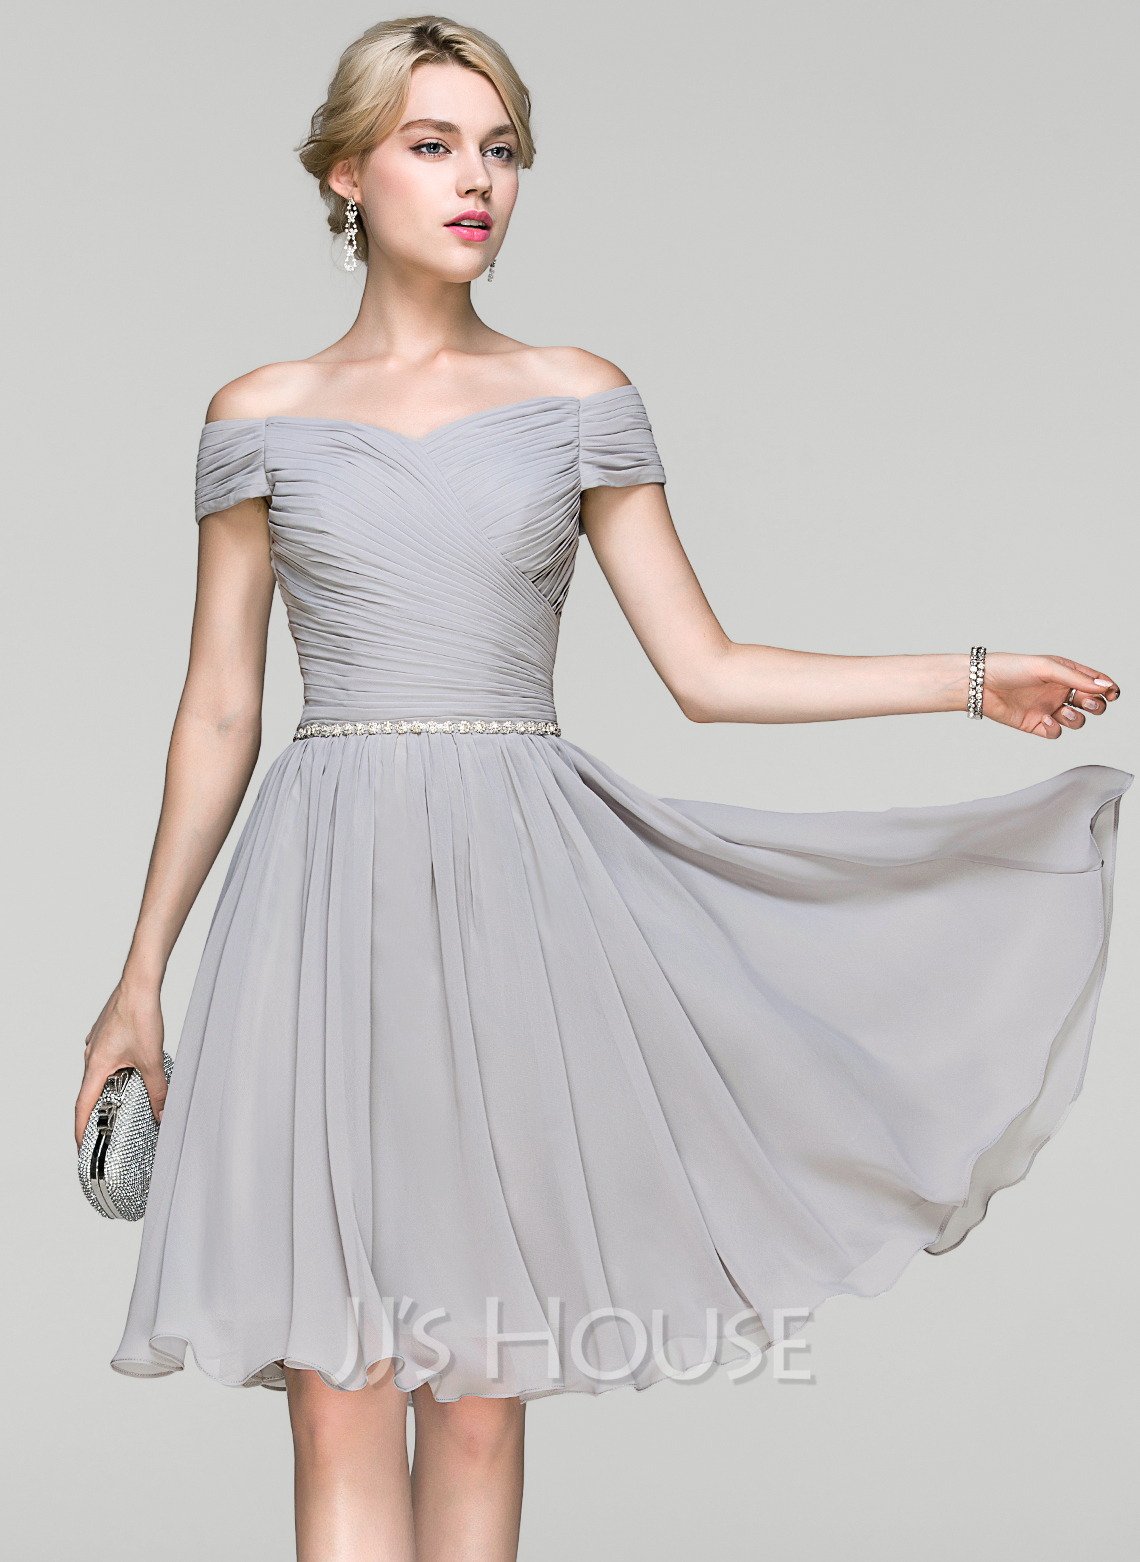 A-Line Princess Off-the-Shoulder Knee-Length Chiffon Cocktail Dress 926315787